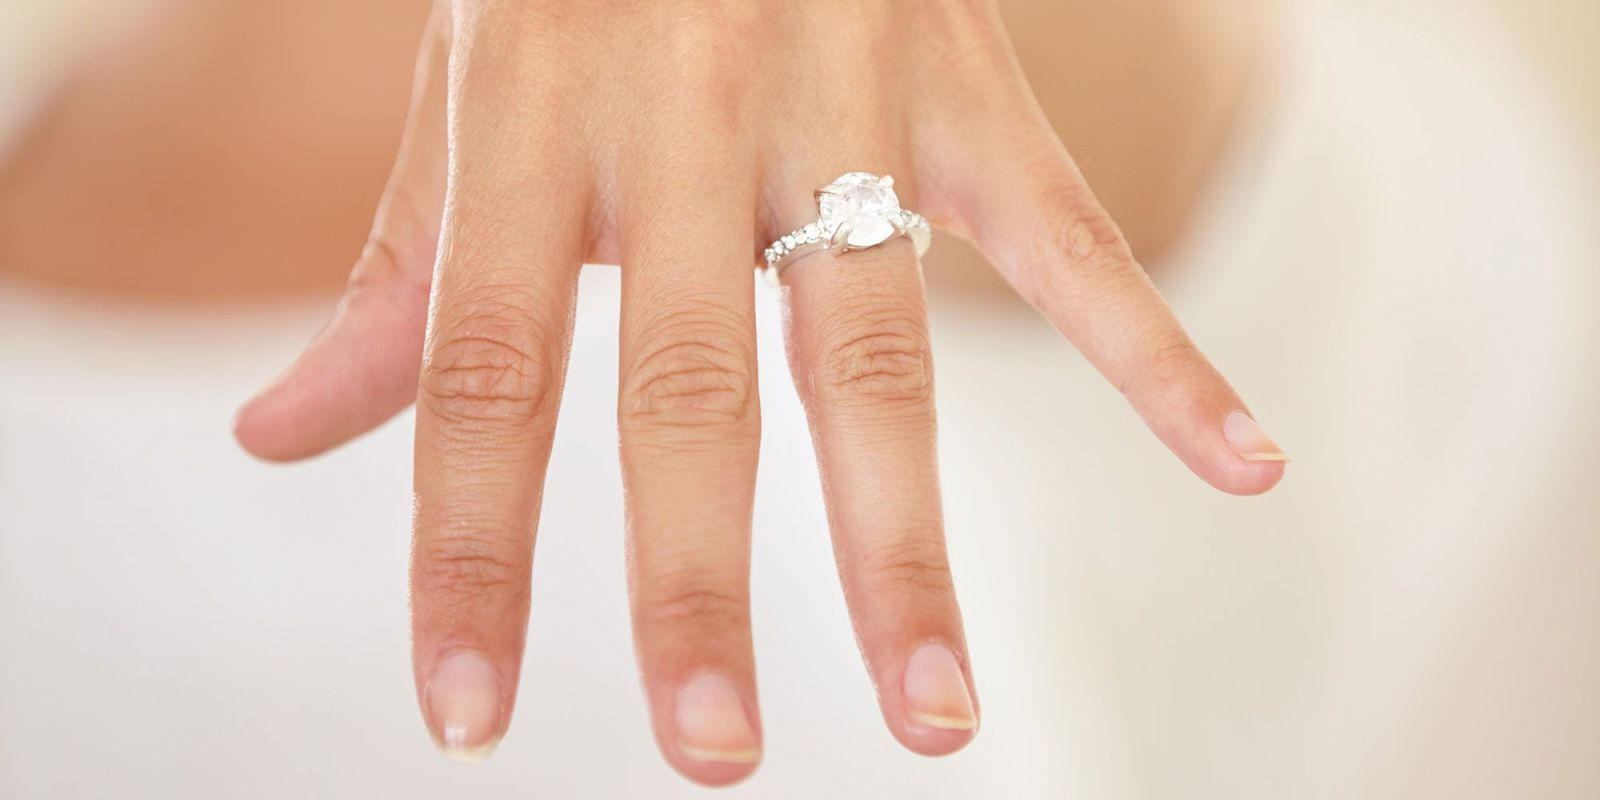 The Painful New Engagement Ring Trend You Need To Know About